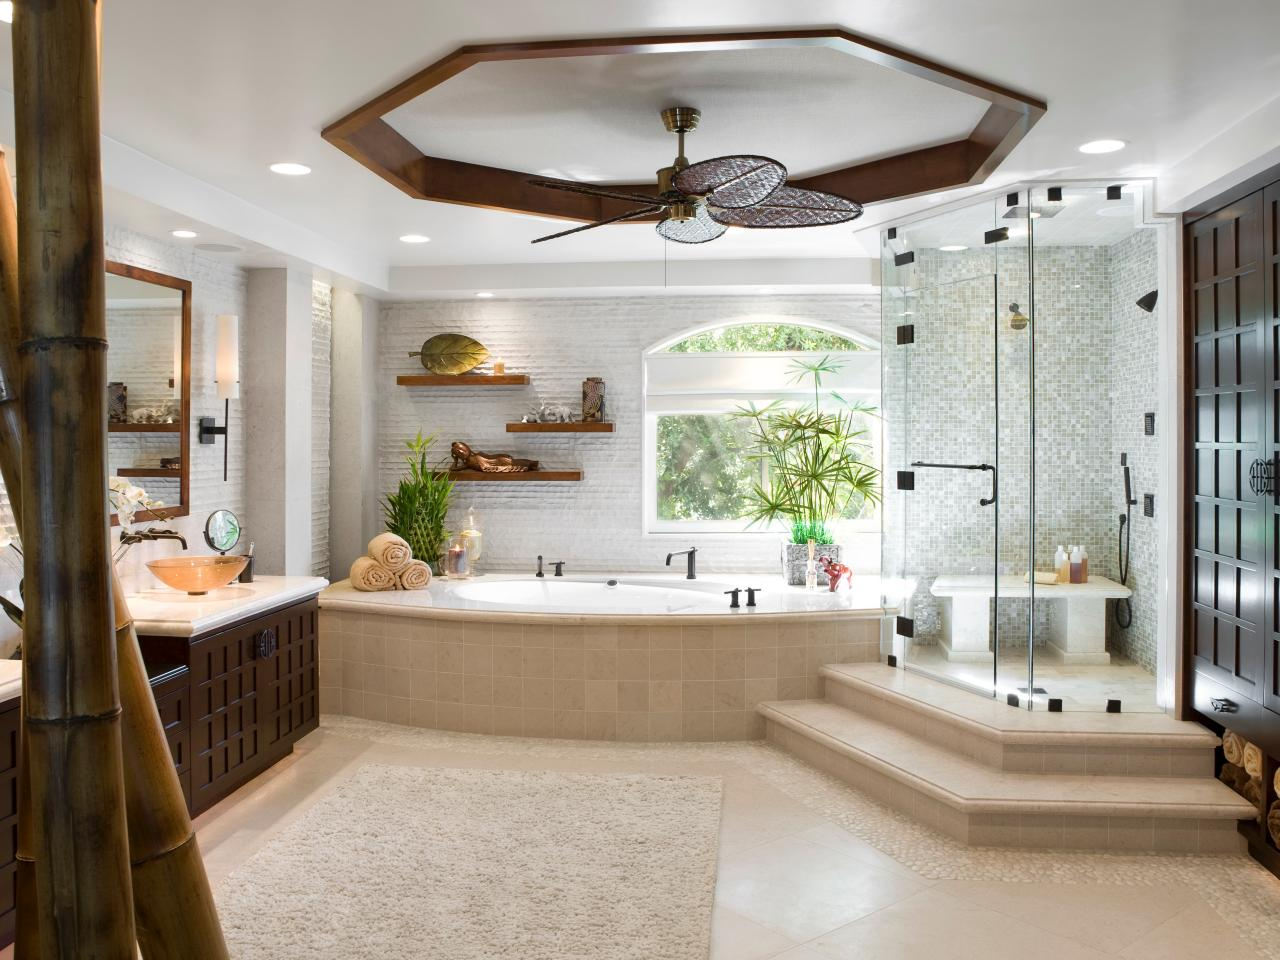 Pictures Of Luxury Bathrooms Interesting Luxury Bathrooms  Hgtv Design Ideas